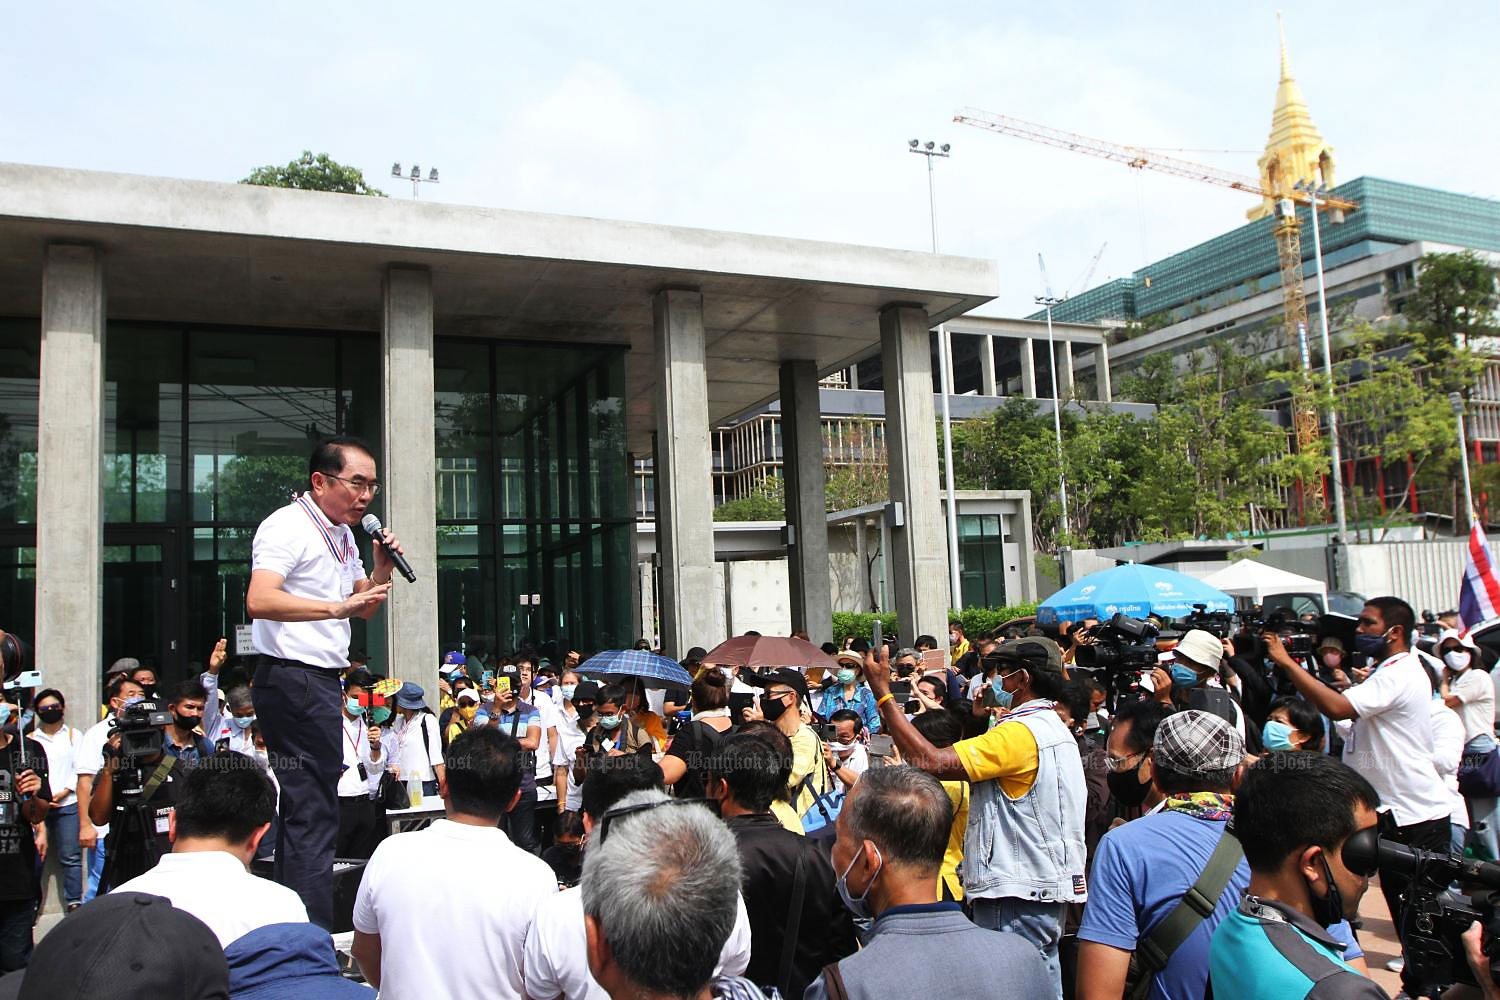 Dr Warong Dechgitvigrom, leader of the Thai Pakdee (Loyal Thai) group, speaks to a crowd before presenting to parliament a petition containing the names of 130,000 people who oppose constitutional amendments. He insisted that lawmakers listen to those who voted for the charter in the referendum. (Photo by Wichan Charoenkiatpakul)